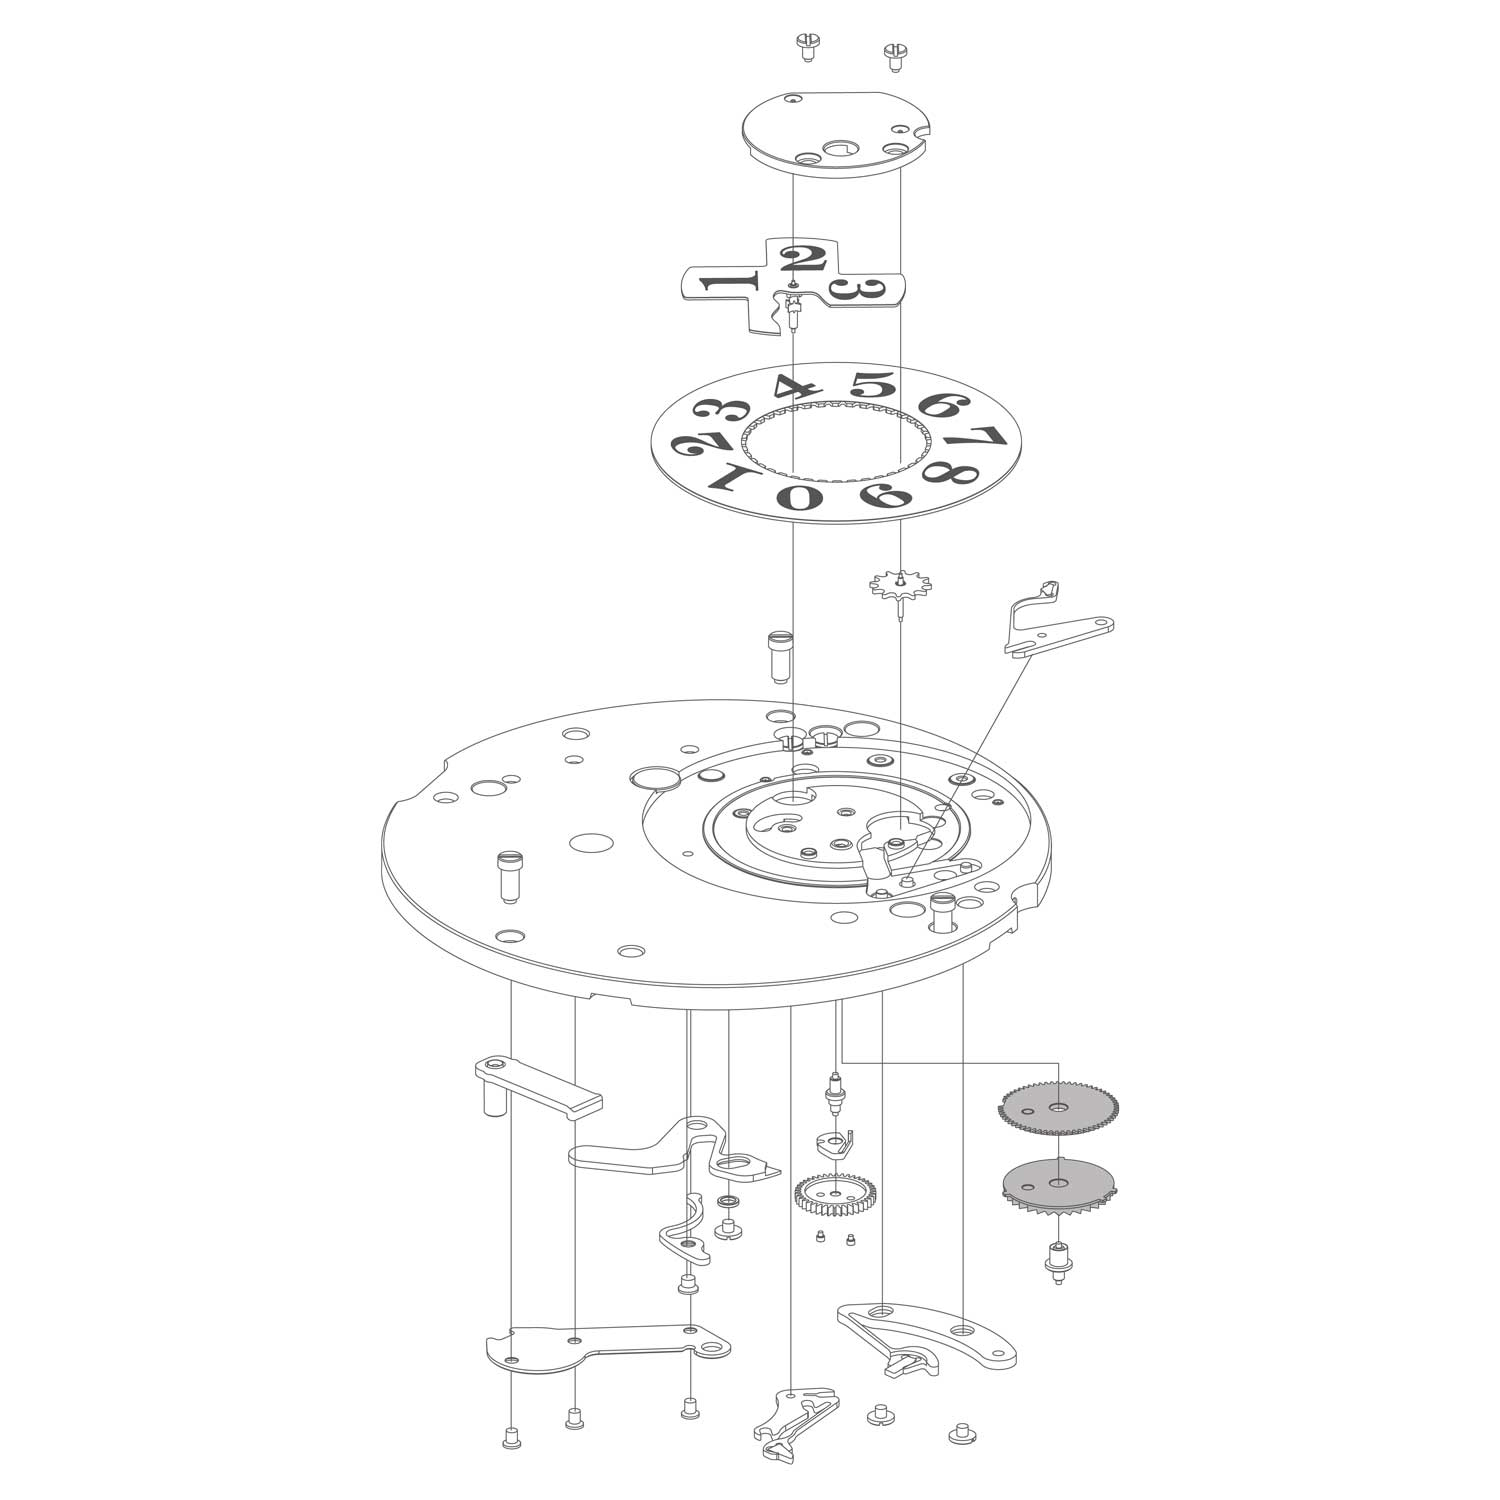 An exploded diagram of the oversized date mechanism